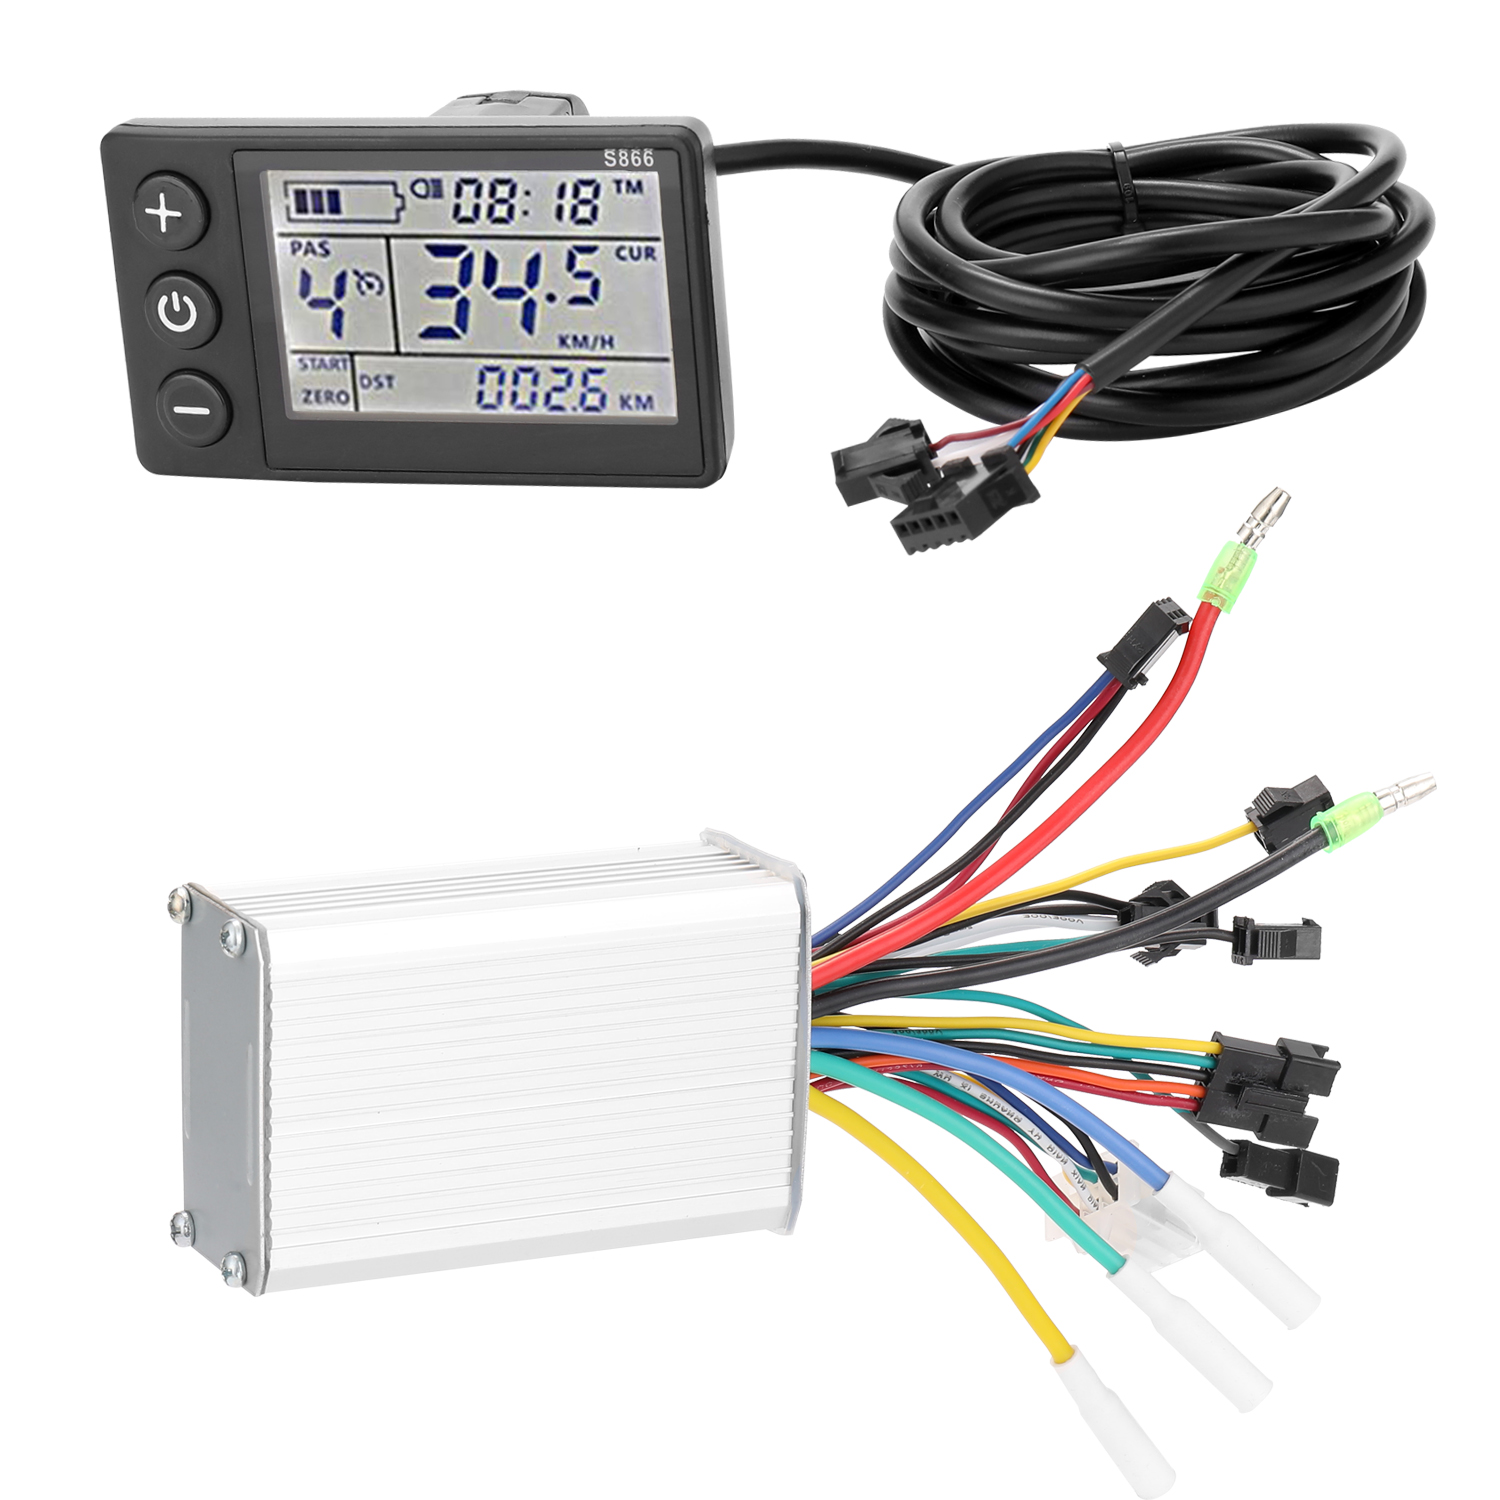 E-bike Controller with LCD Display Electric Bike Controller 24V-48V/36V-60V 350W Brushless Bicycles Motor Scooter Controller